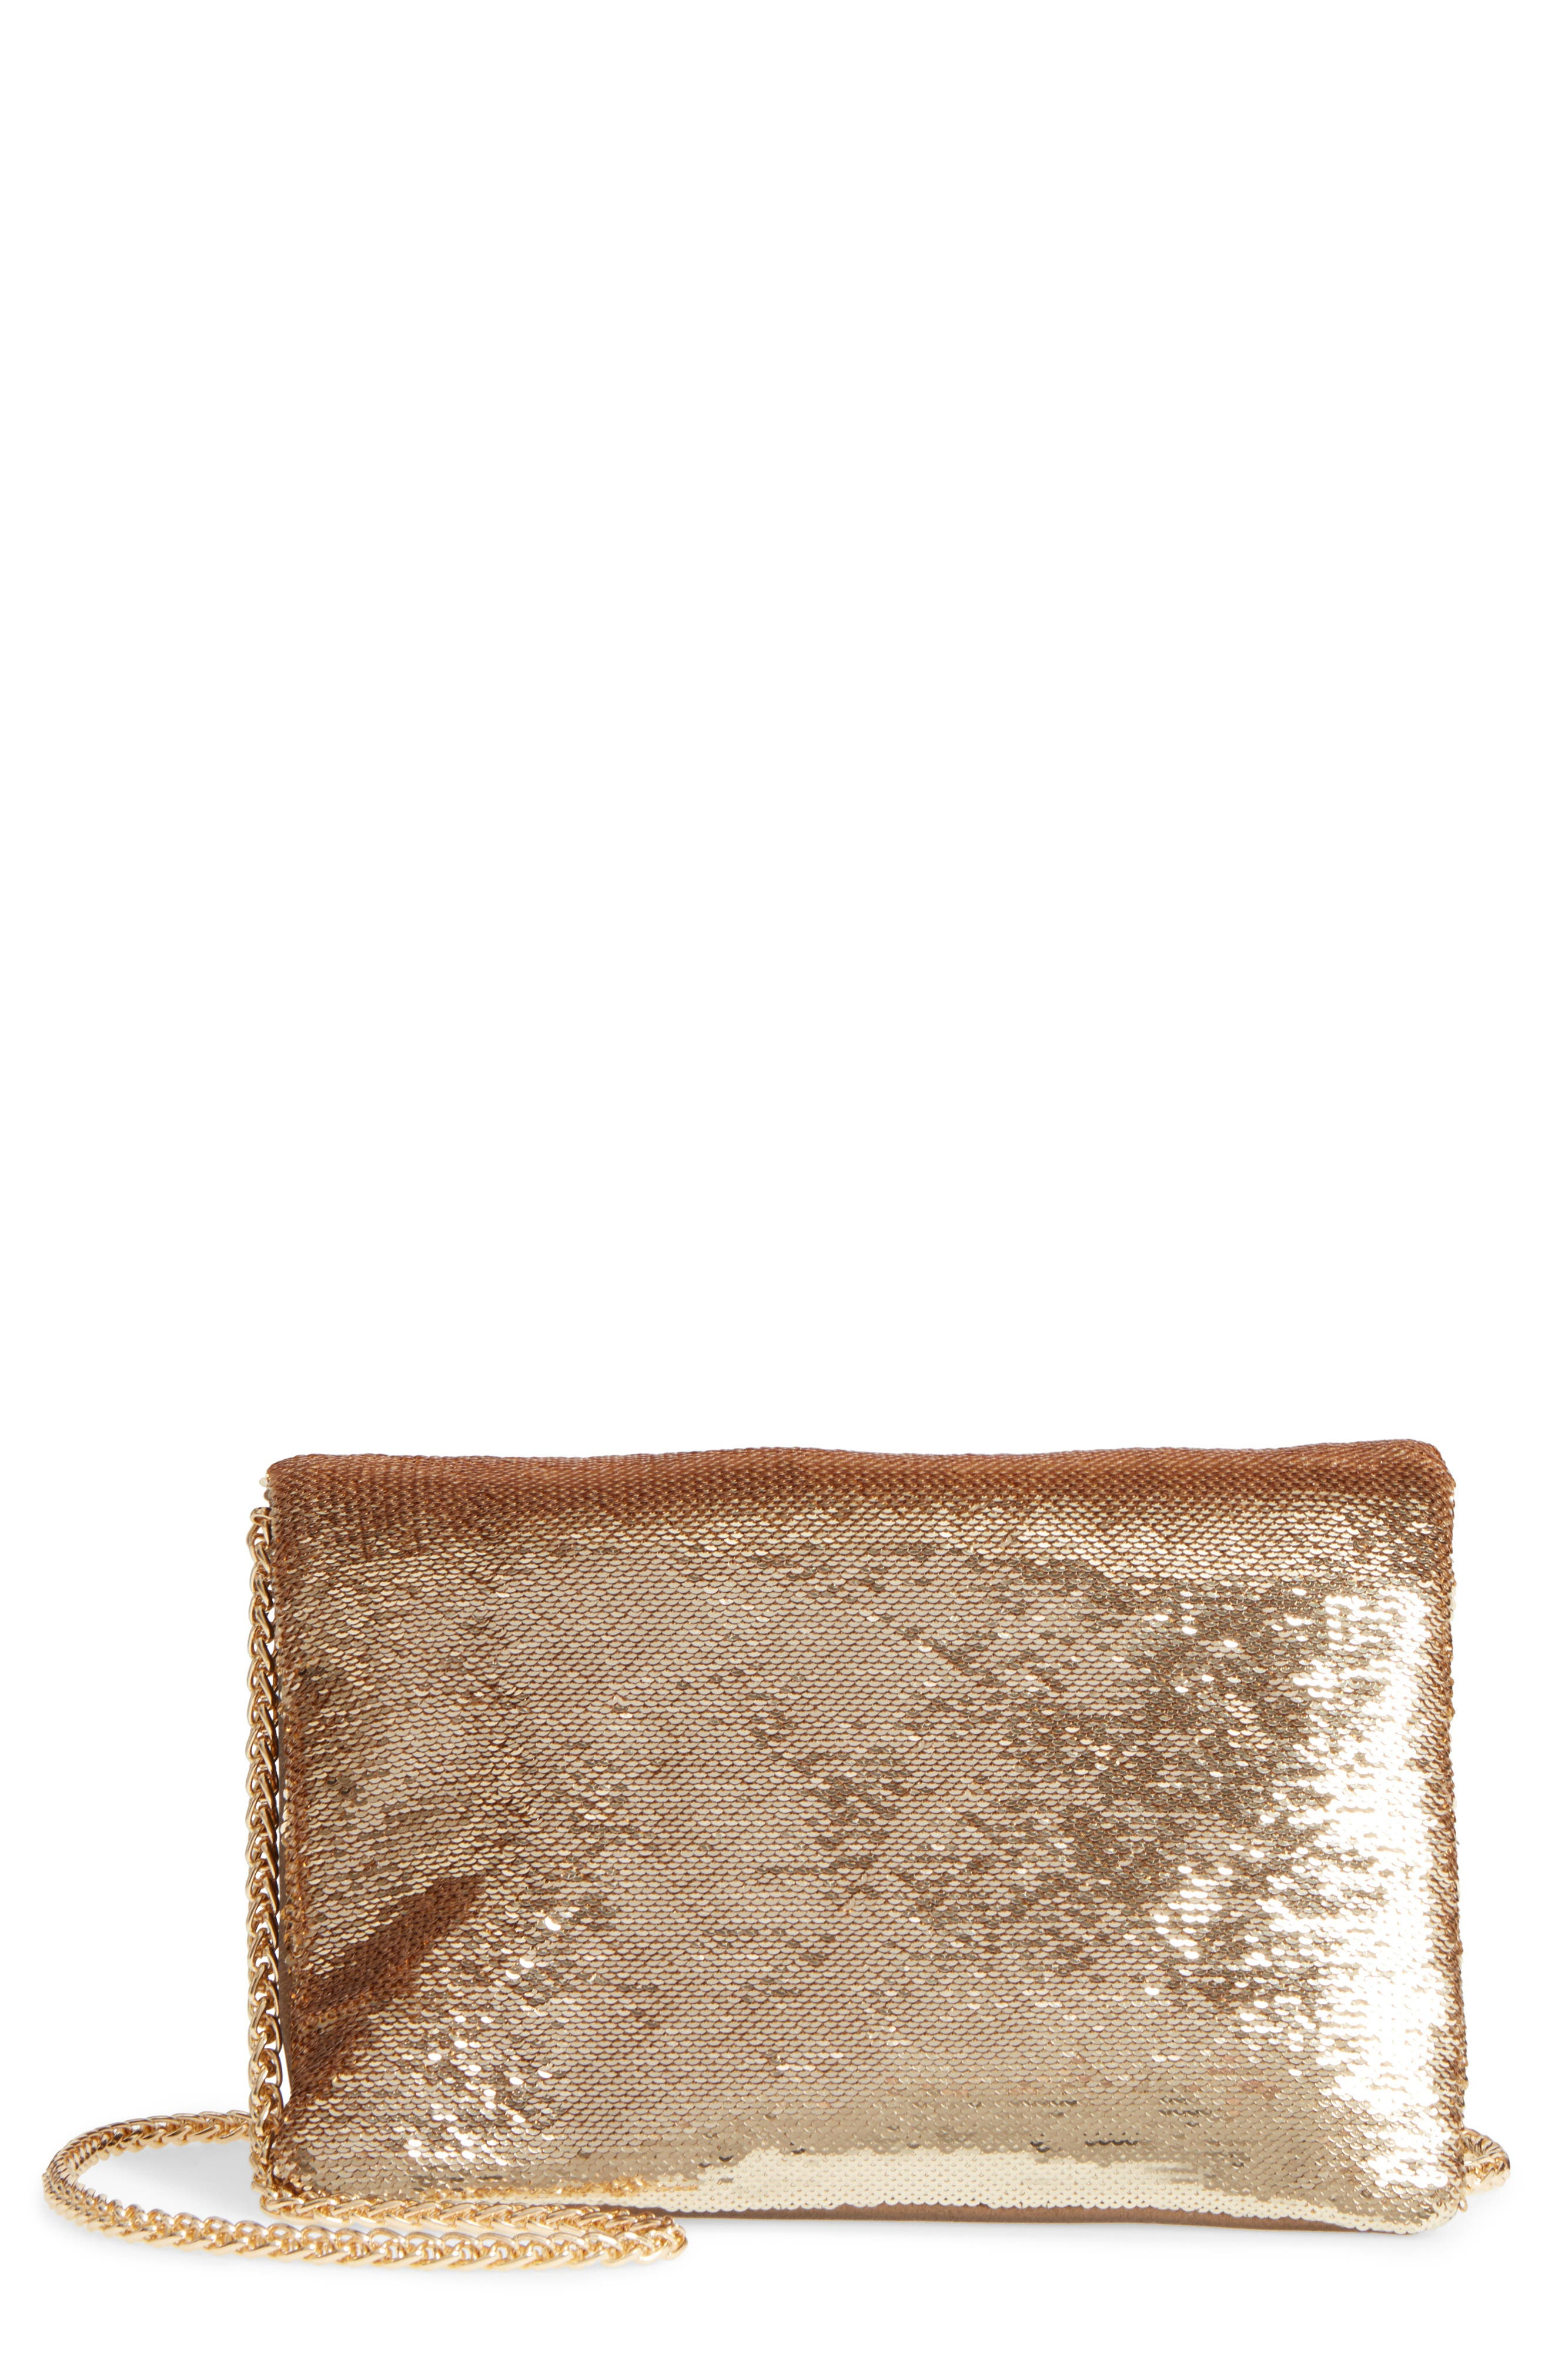 Alternate Image 1 Selected - Street Level Sequin Clutch